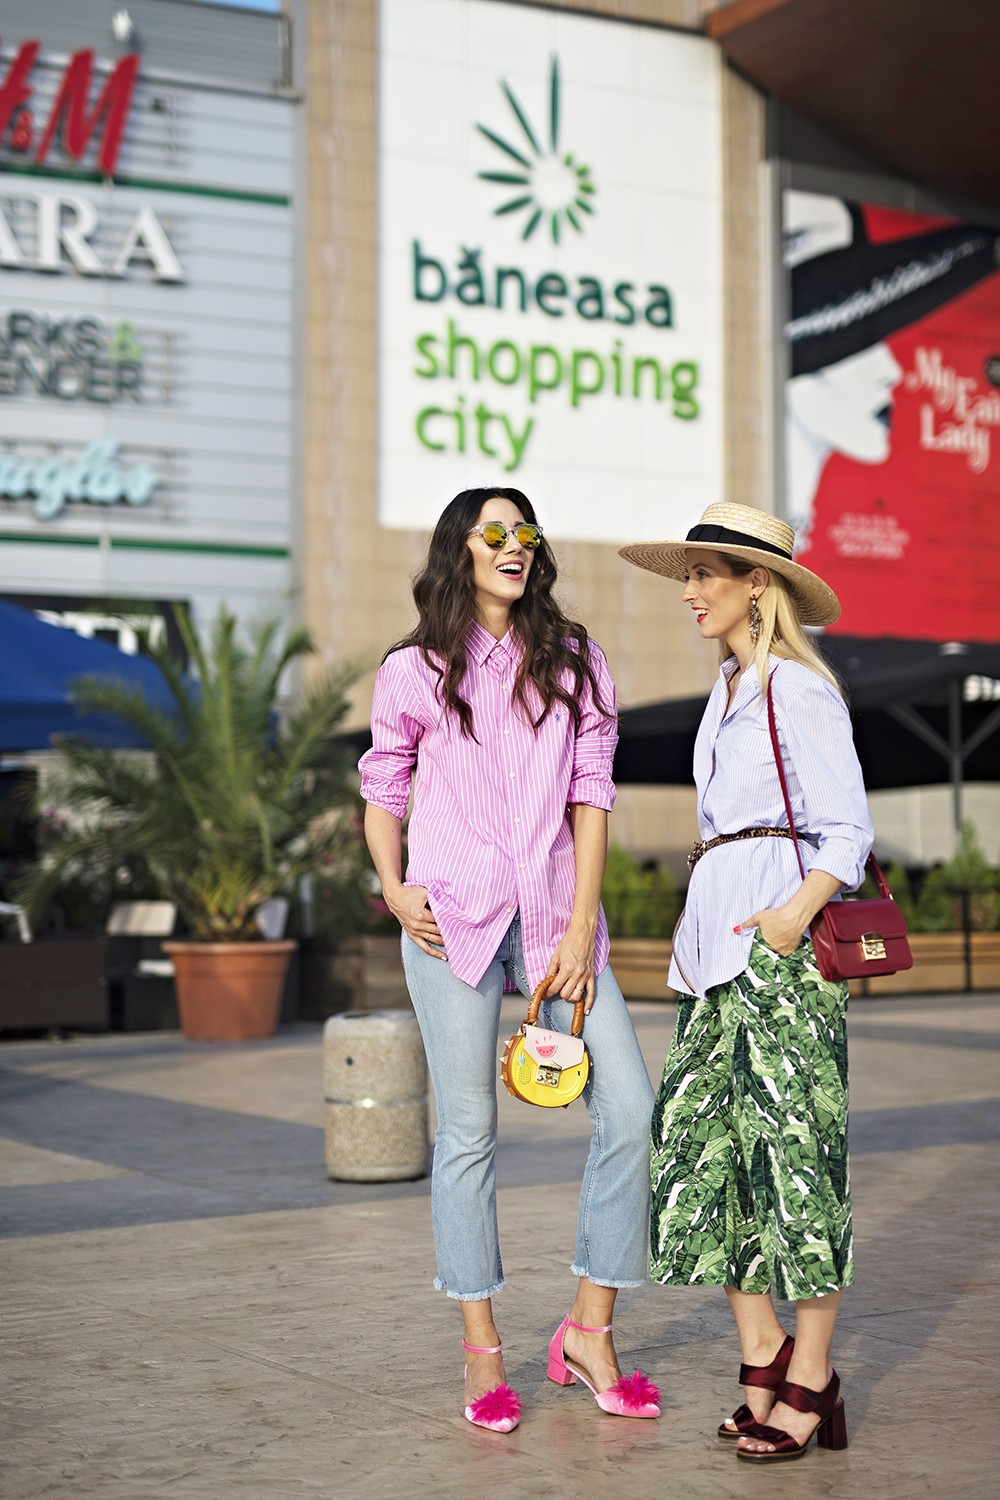 fabulous_muses_baneasa_shopping_city_shopinstyle_concurs